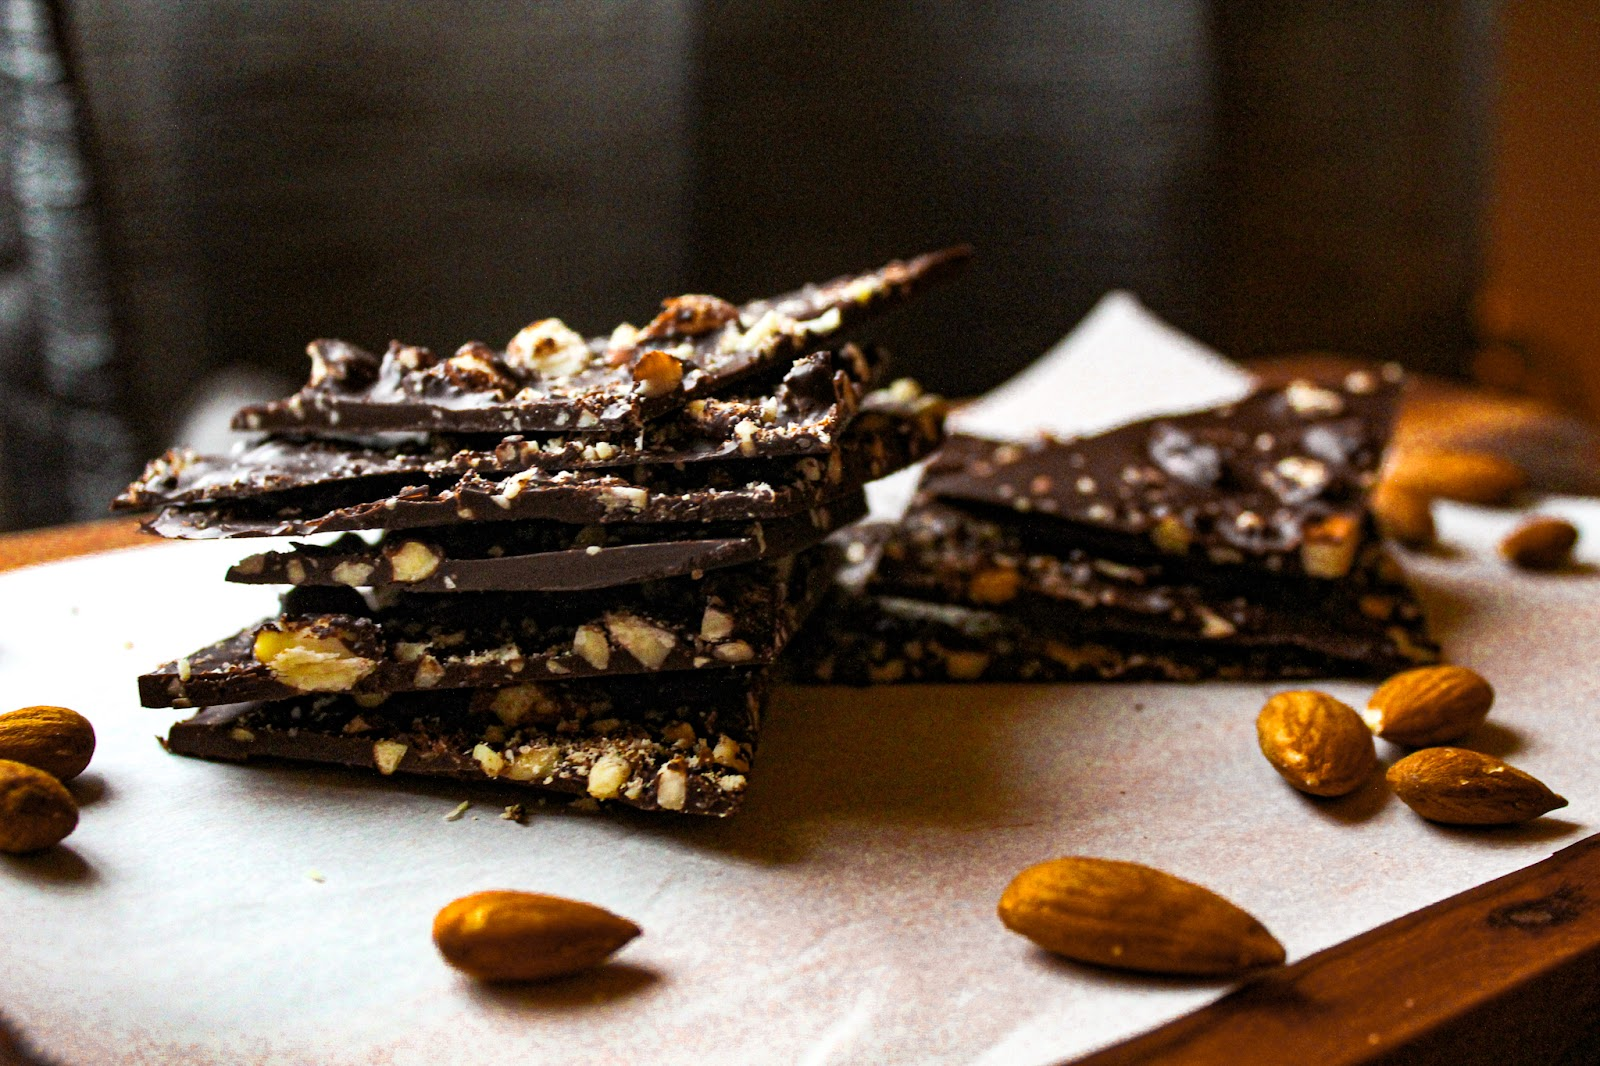 Chocolate almond bark in pieces on a table